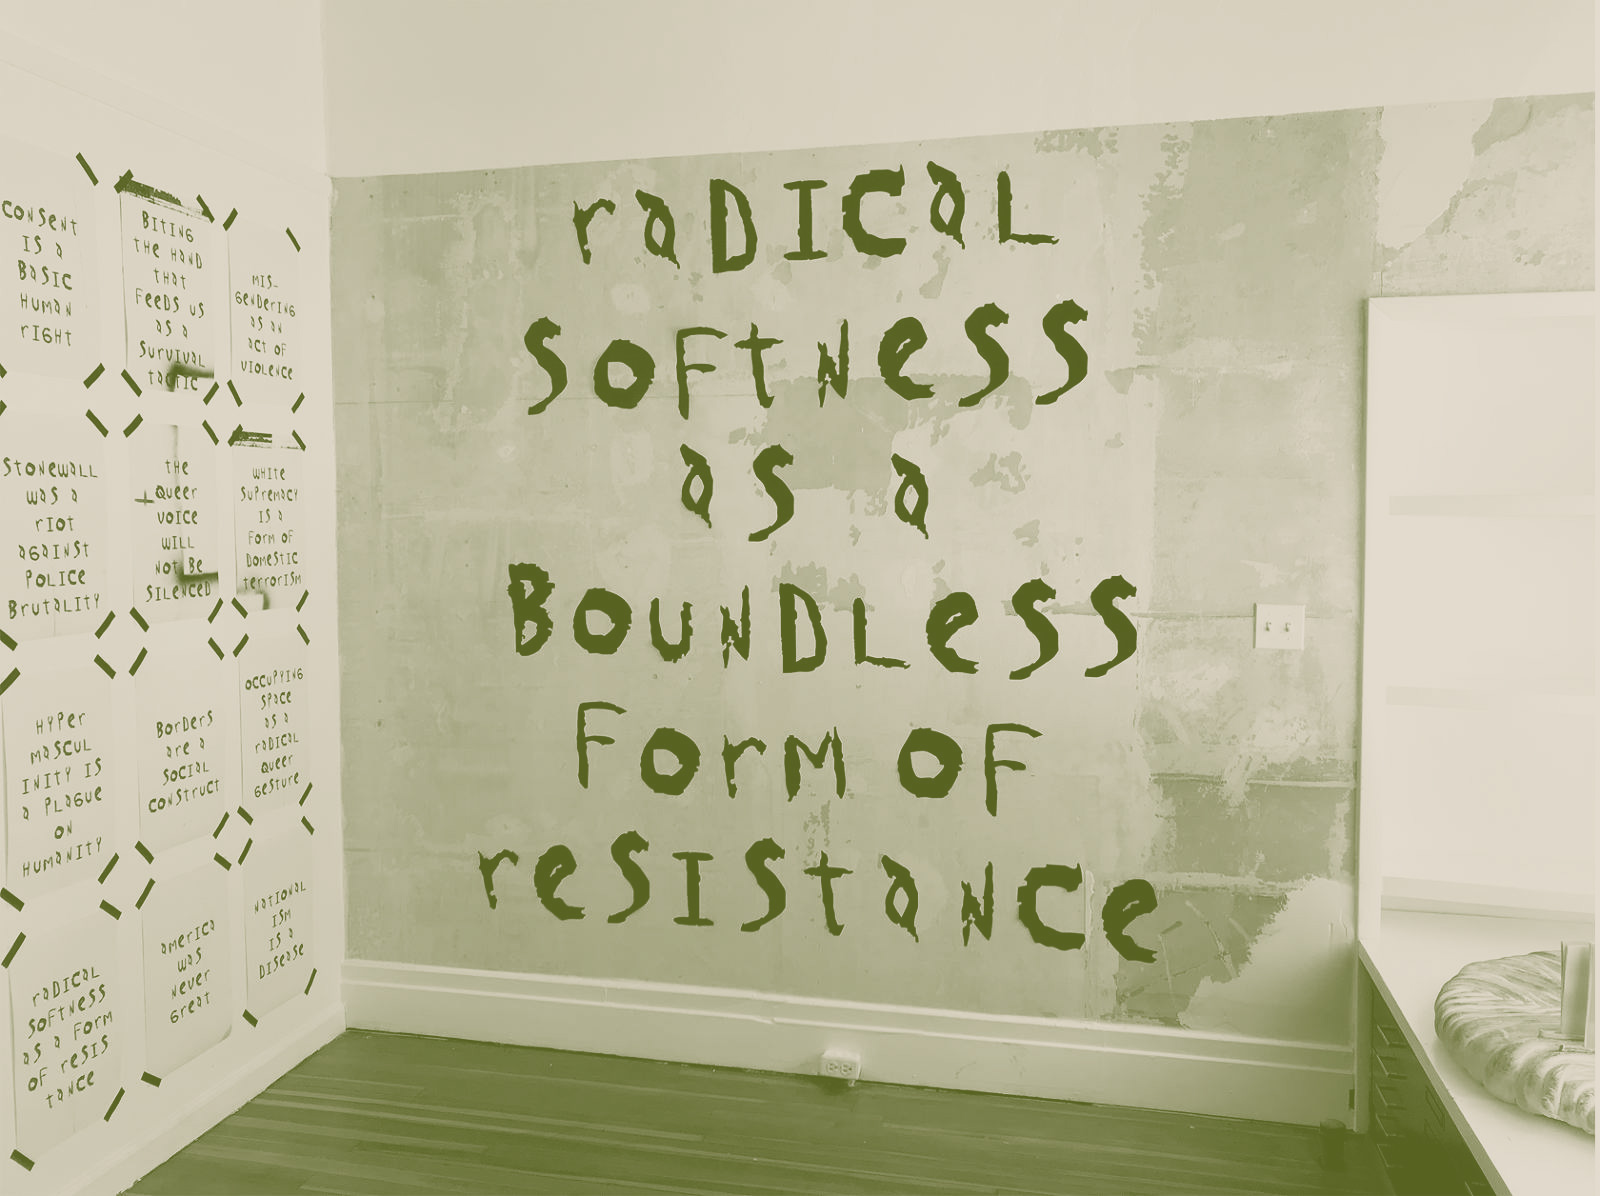 GenderFail: Talking Through *Radical Softness as a Boundless Form of Resistance*